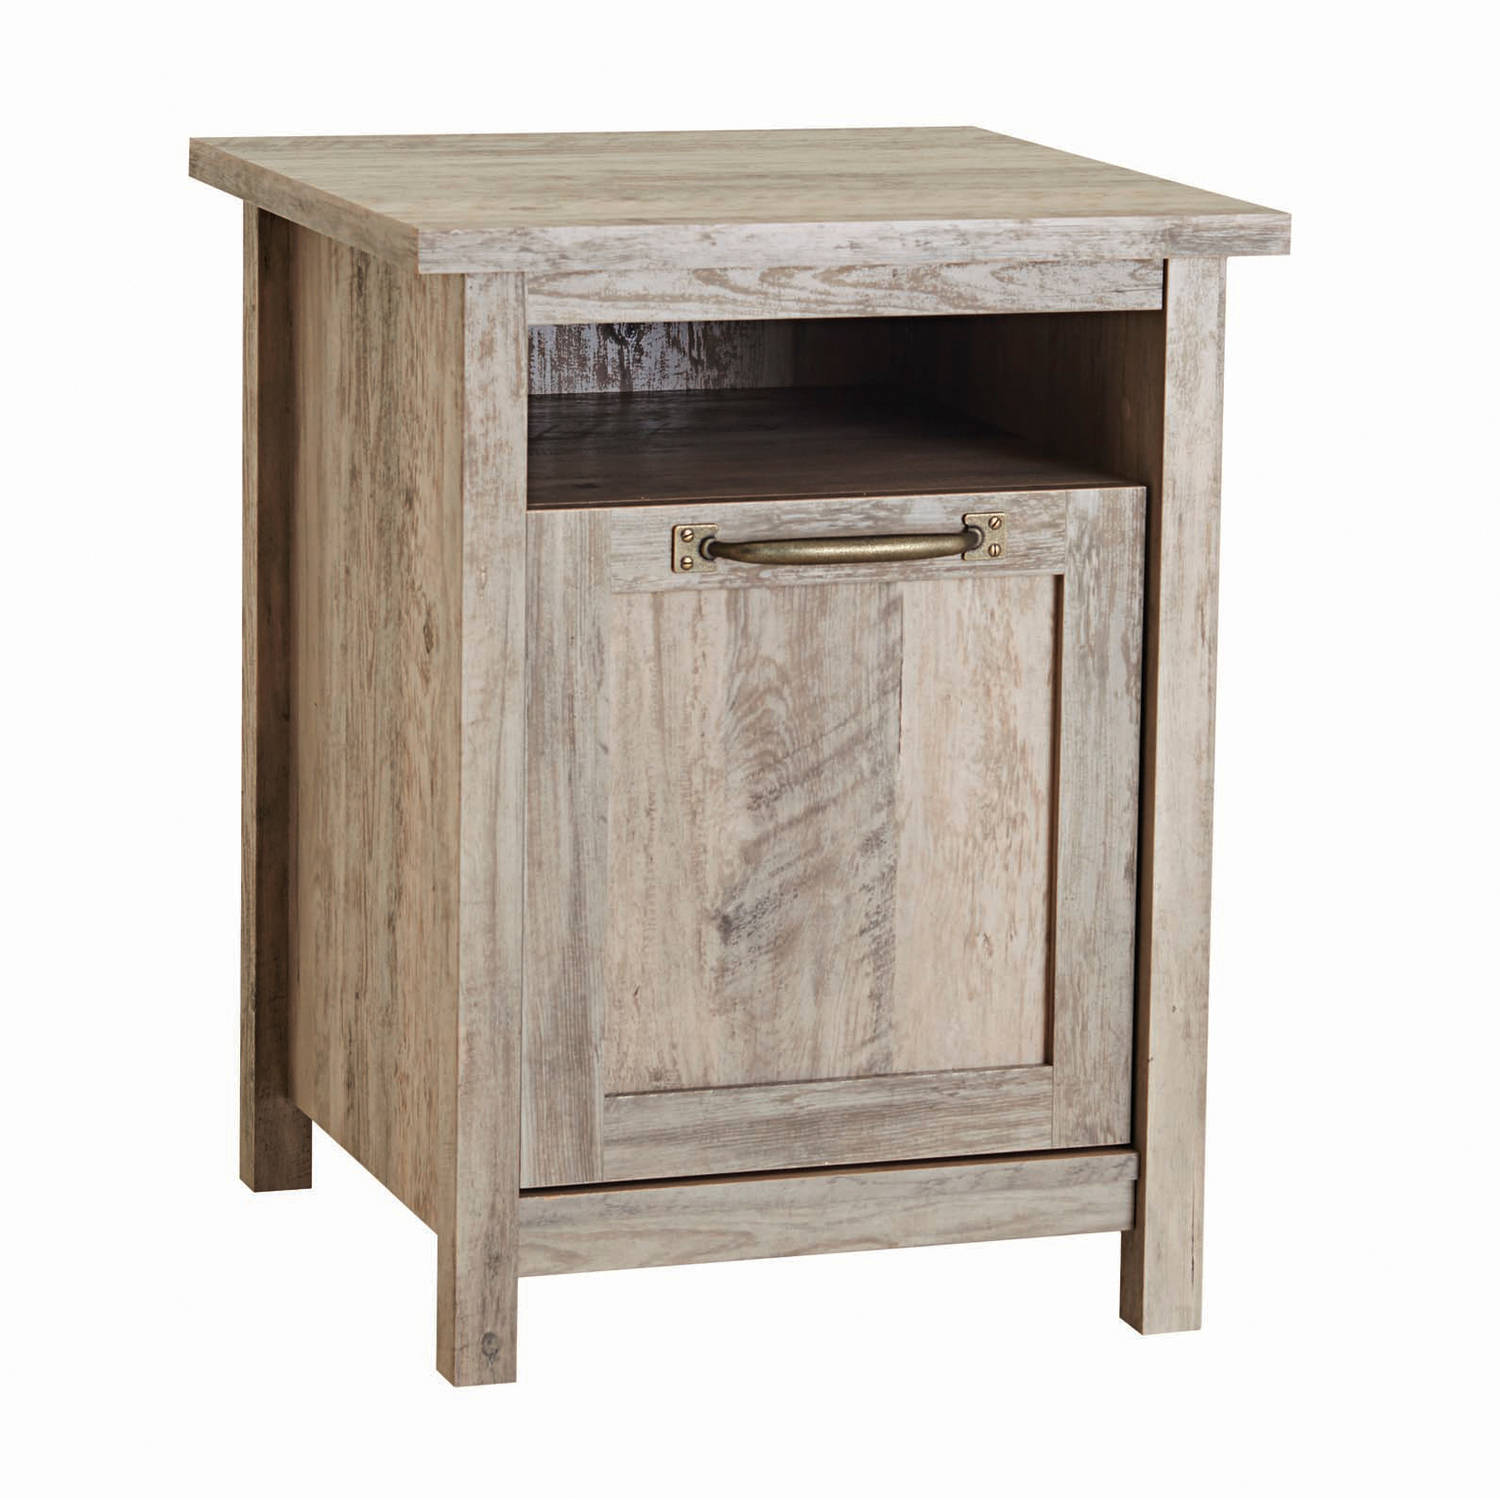 better homes gardens modern farmhouse side table rustic gray style accent departments clearance room and board rugs home goods dinnerware mini bedside lamp white leather trunk